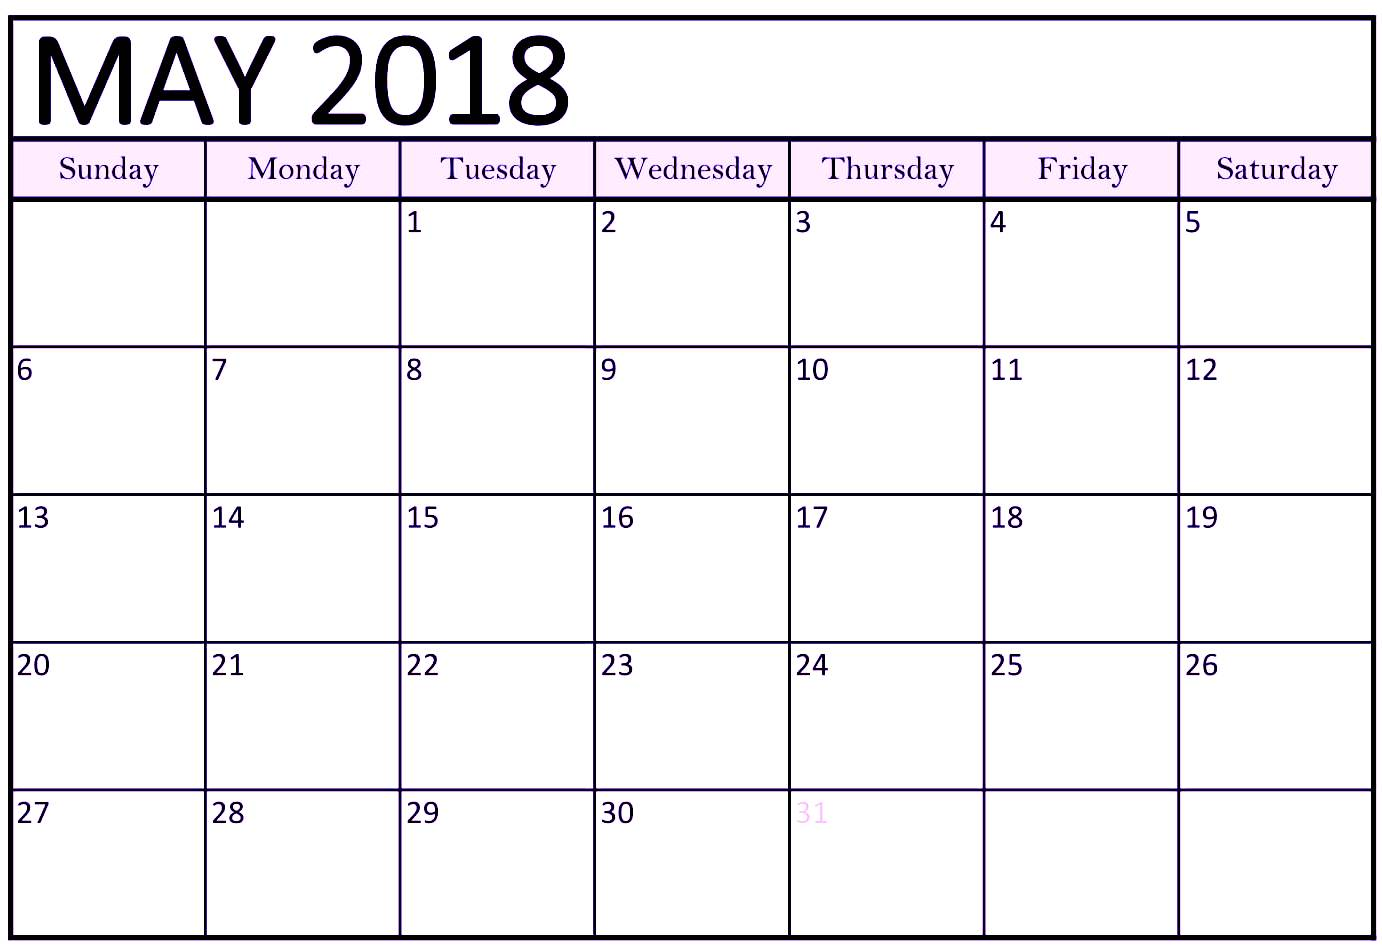 May 2018 Calendar US With Holidays